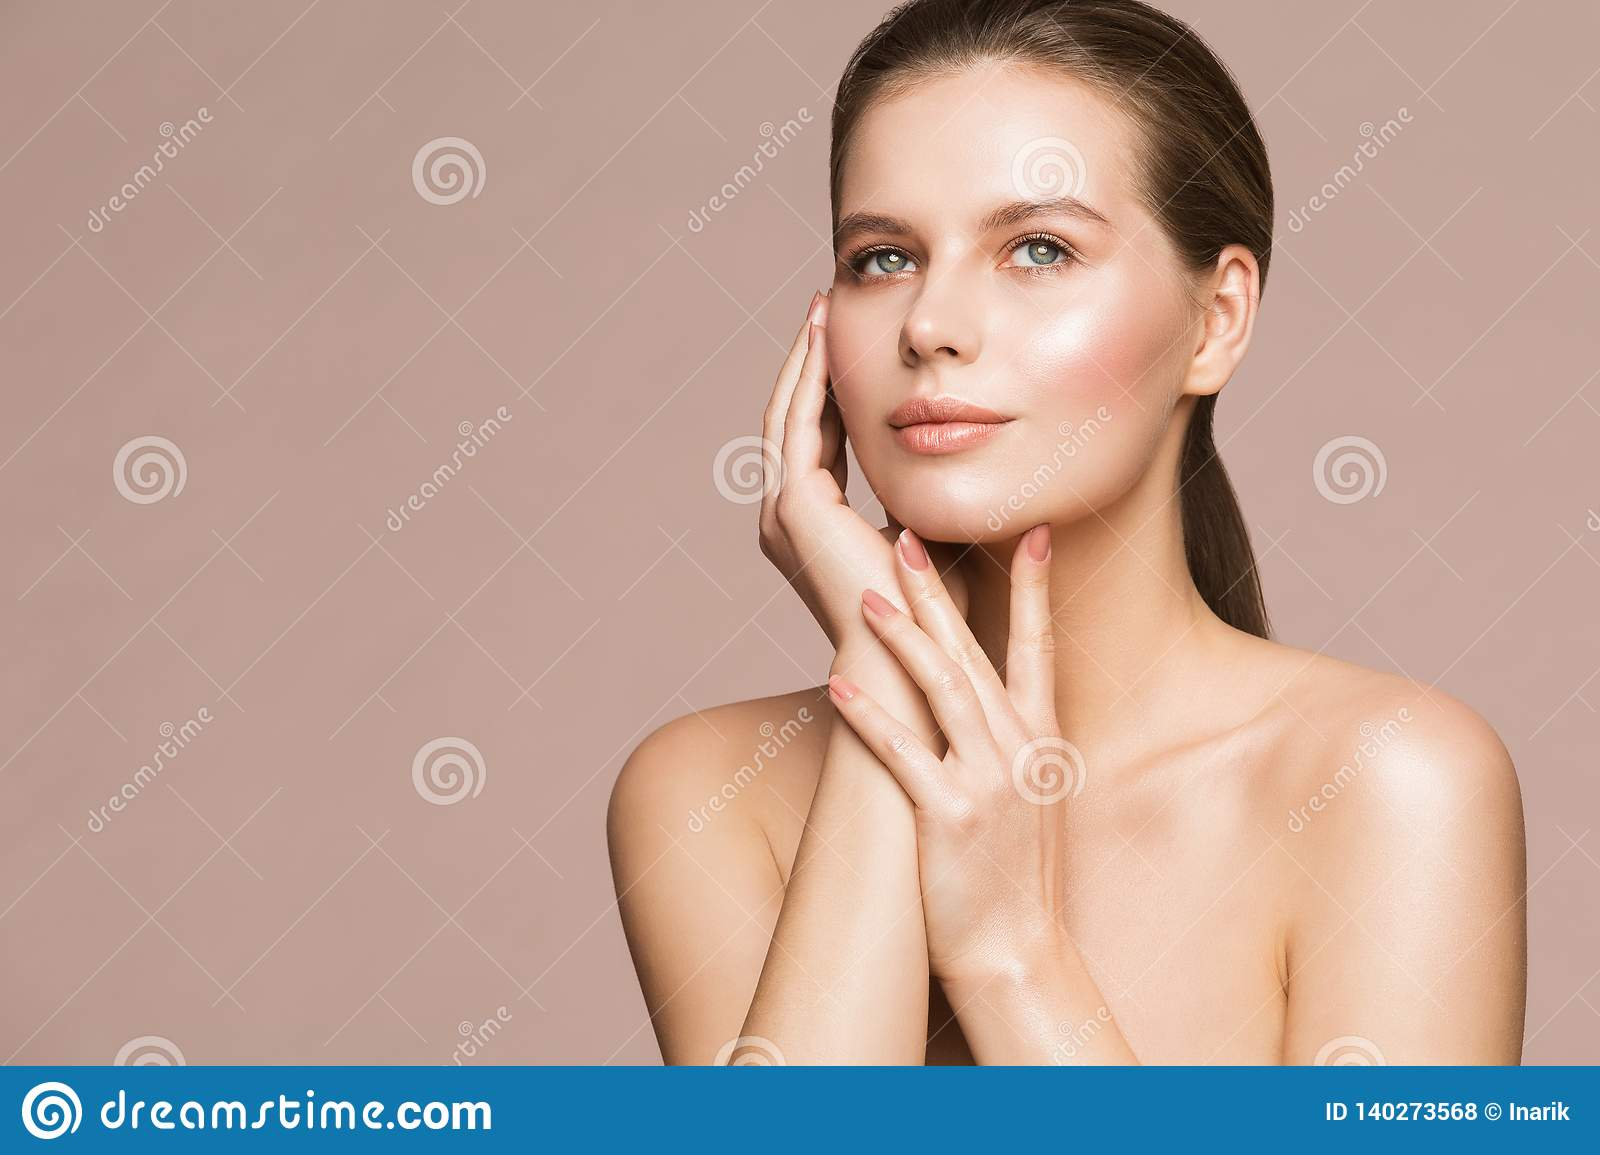 Woman Beauty Portrait, Model Touching Face, Beautiful Girl Skin Care and Treatment